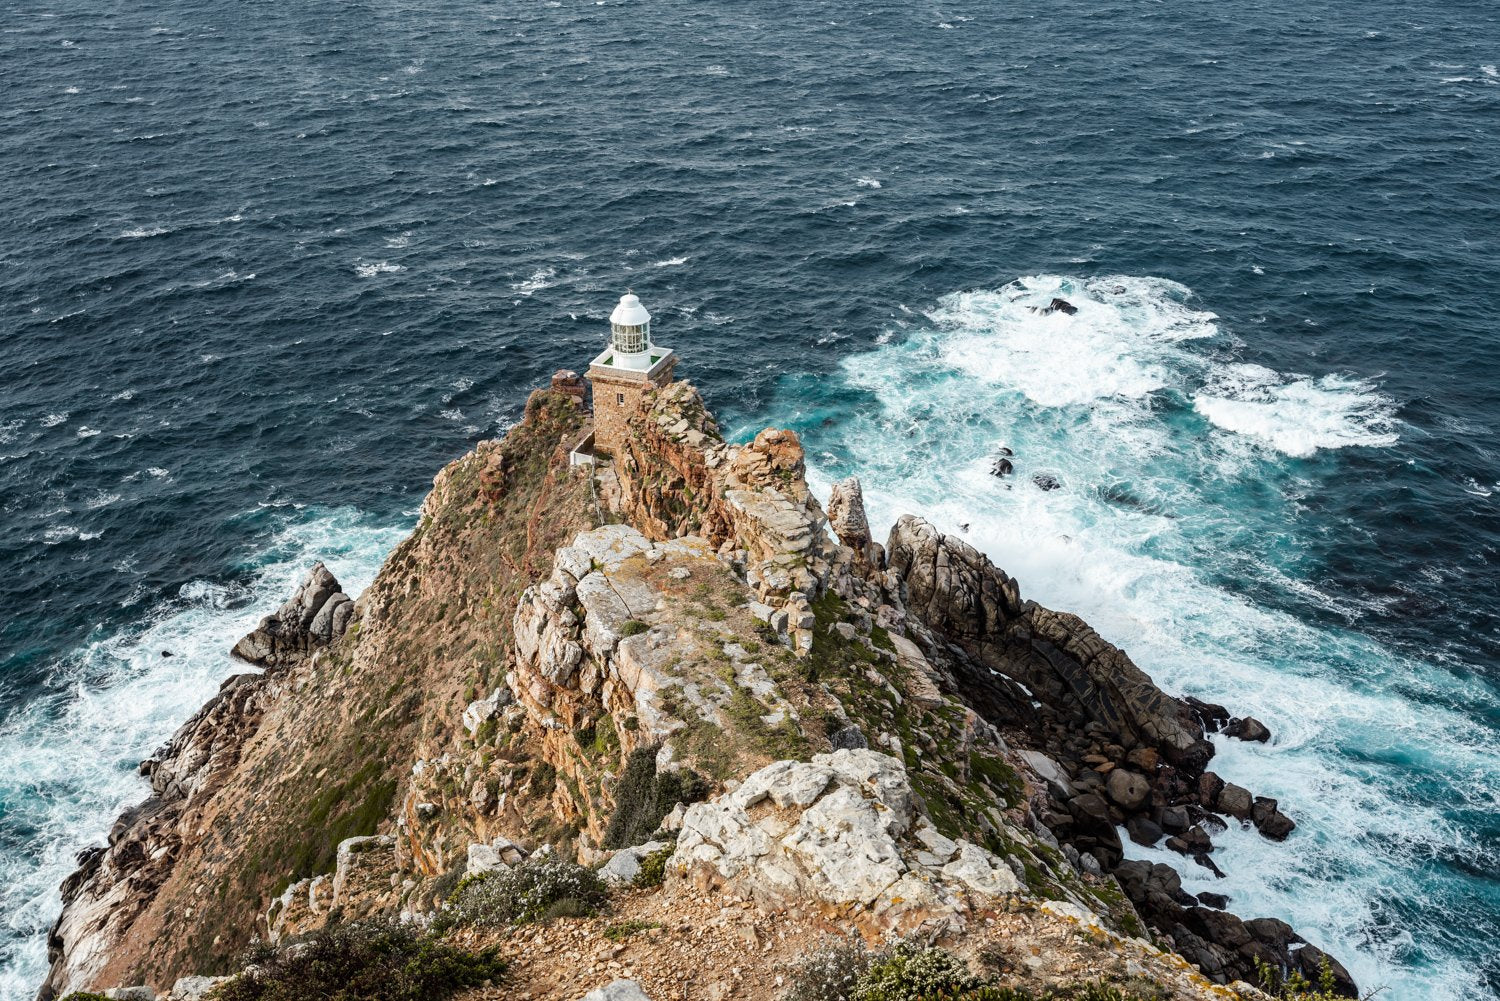 Lighthouse at Cape Point with windy ocean